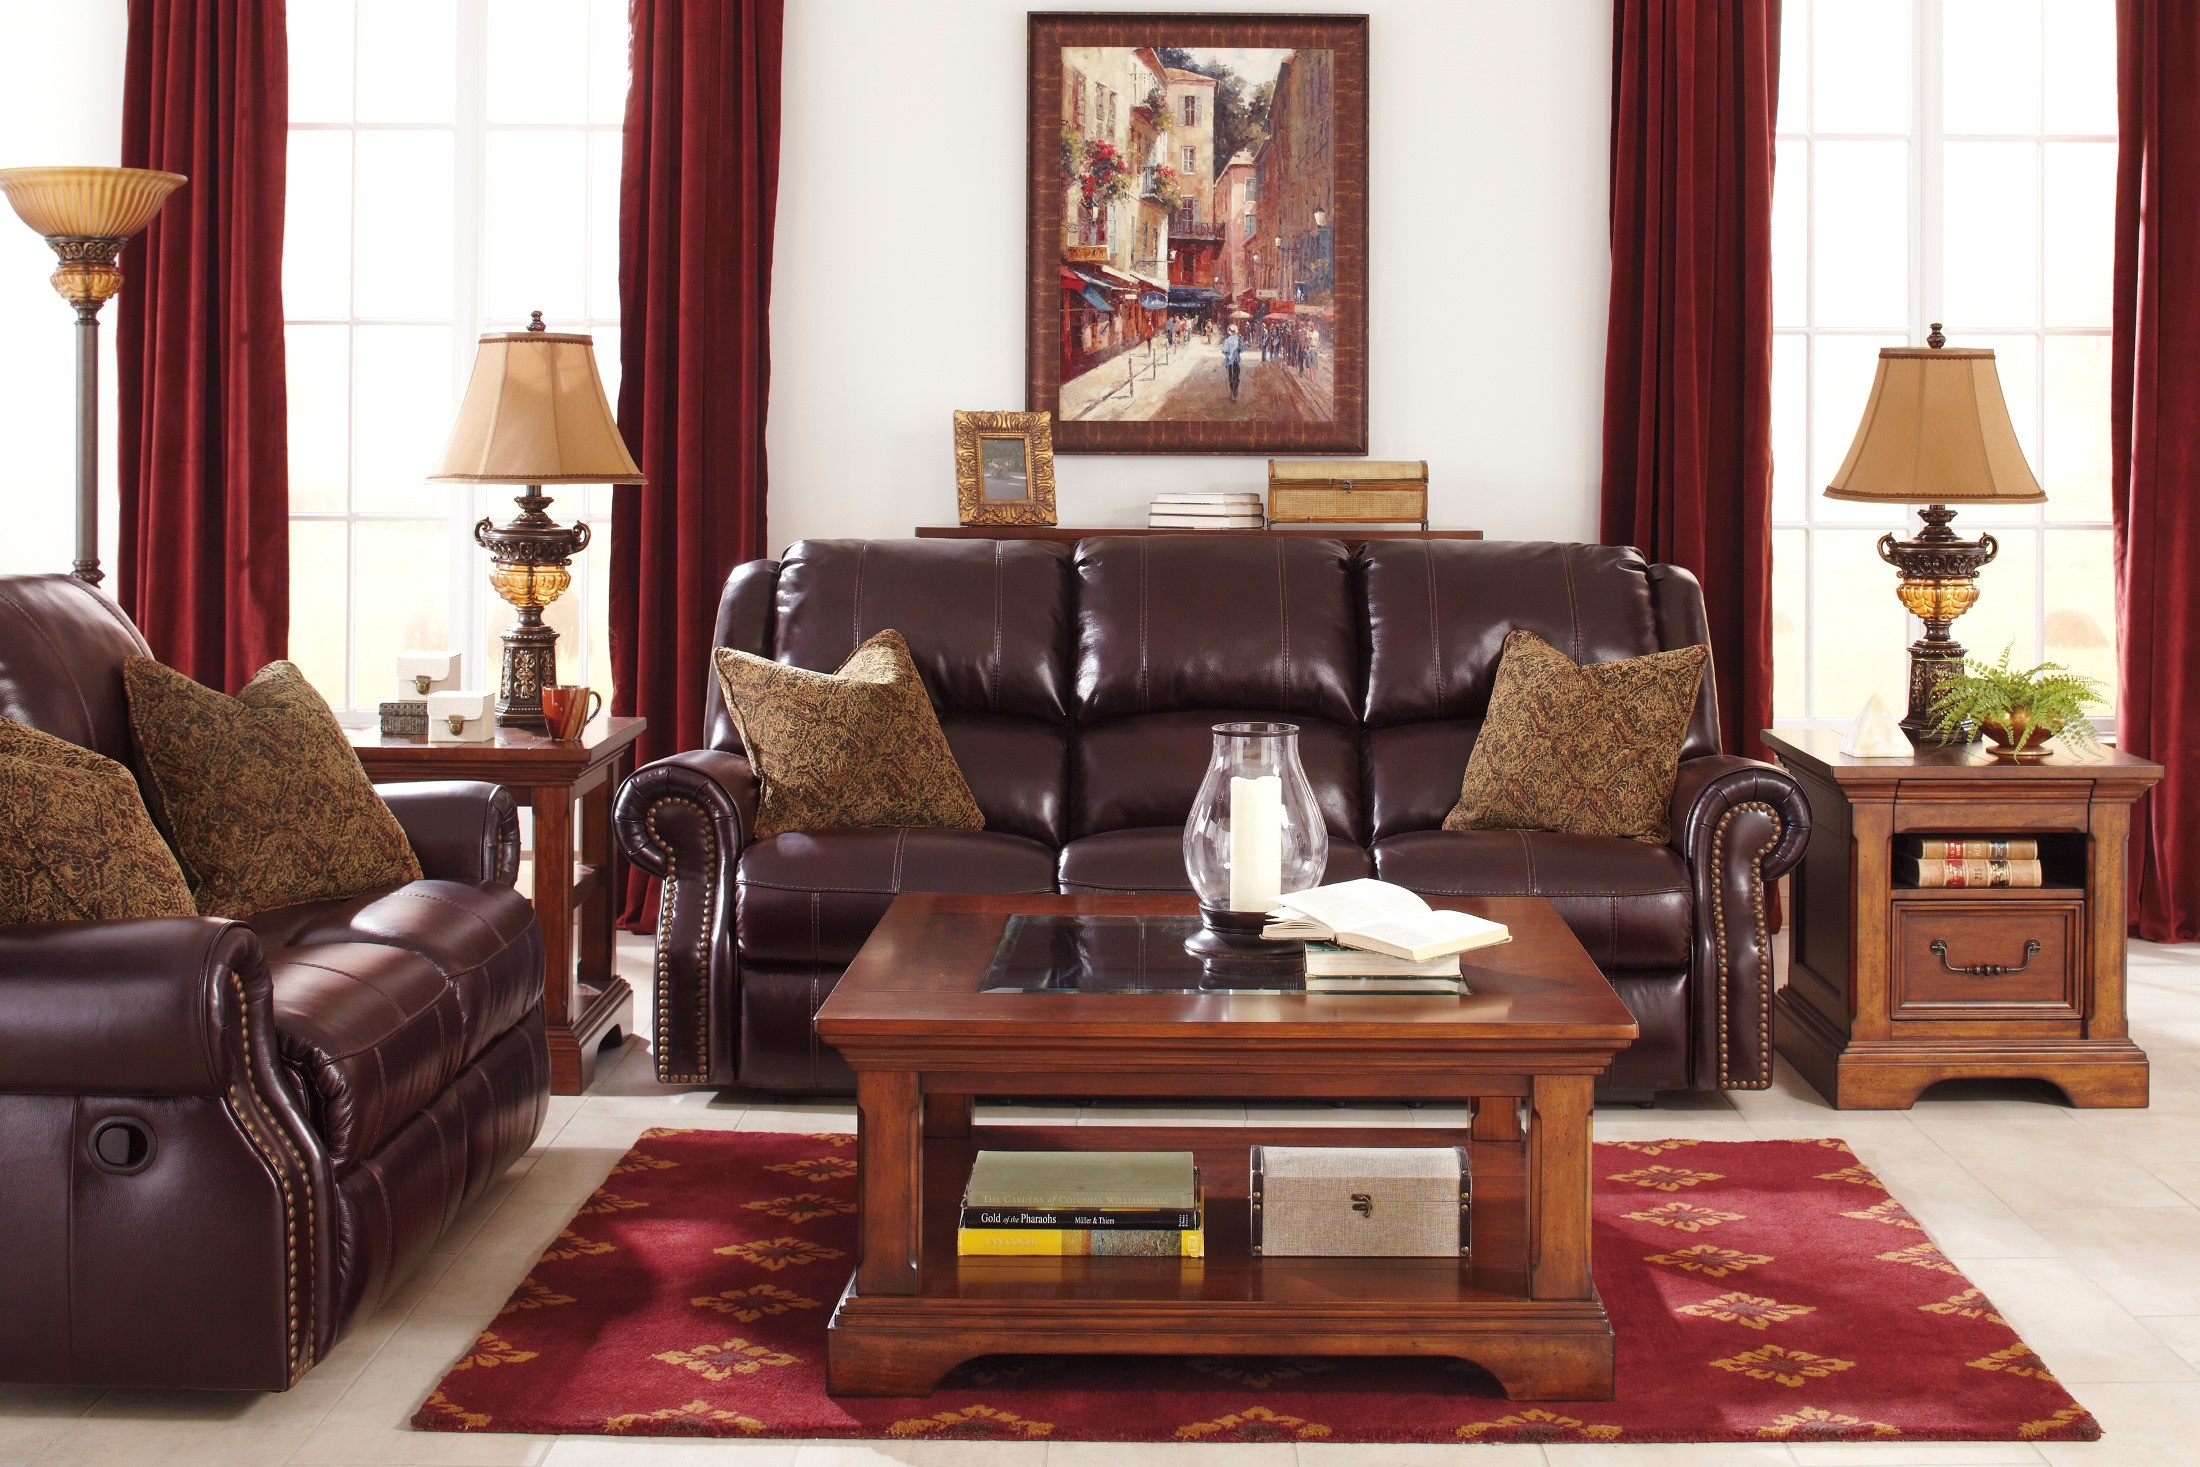 Walworth Blackcherry Power Reclining Living Room Set   Old vs New   Buying  Furniture Online   479469   479467Walworth Blackcherry Power Reclining Living Room Set from Ashley  . Power Recliner Living Room Sets. Home Design Ideas